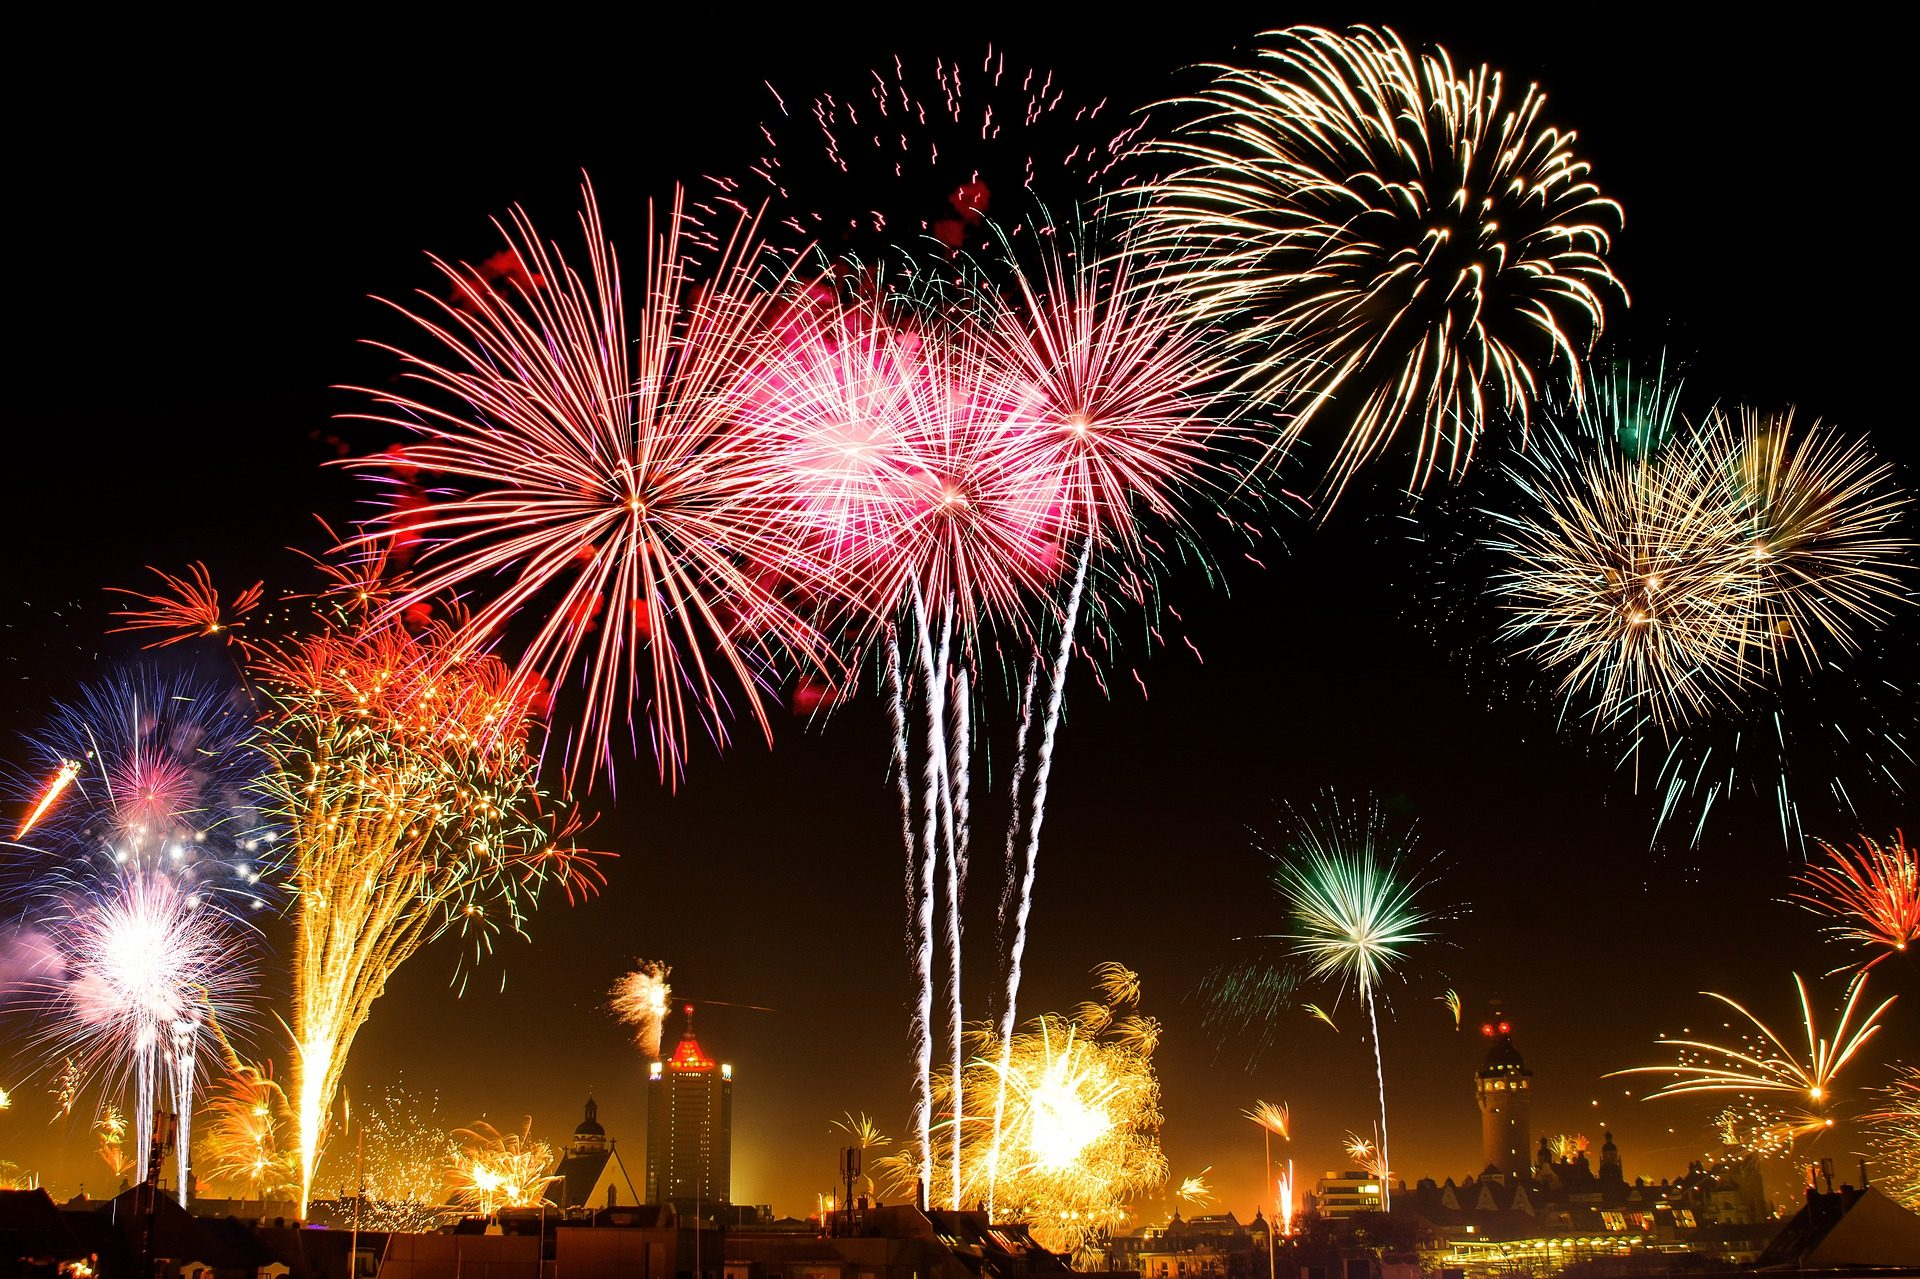 Our Favorite Country Stars Reminisce about 4th of July / Country Stars Performing in Fireworks Spectacular